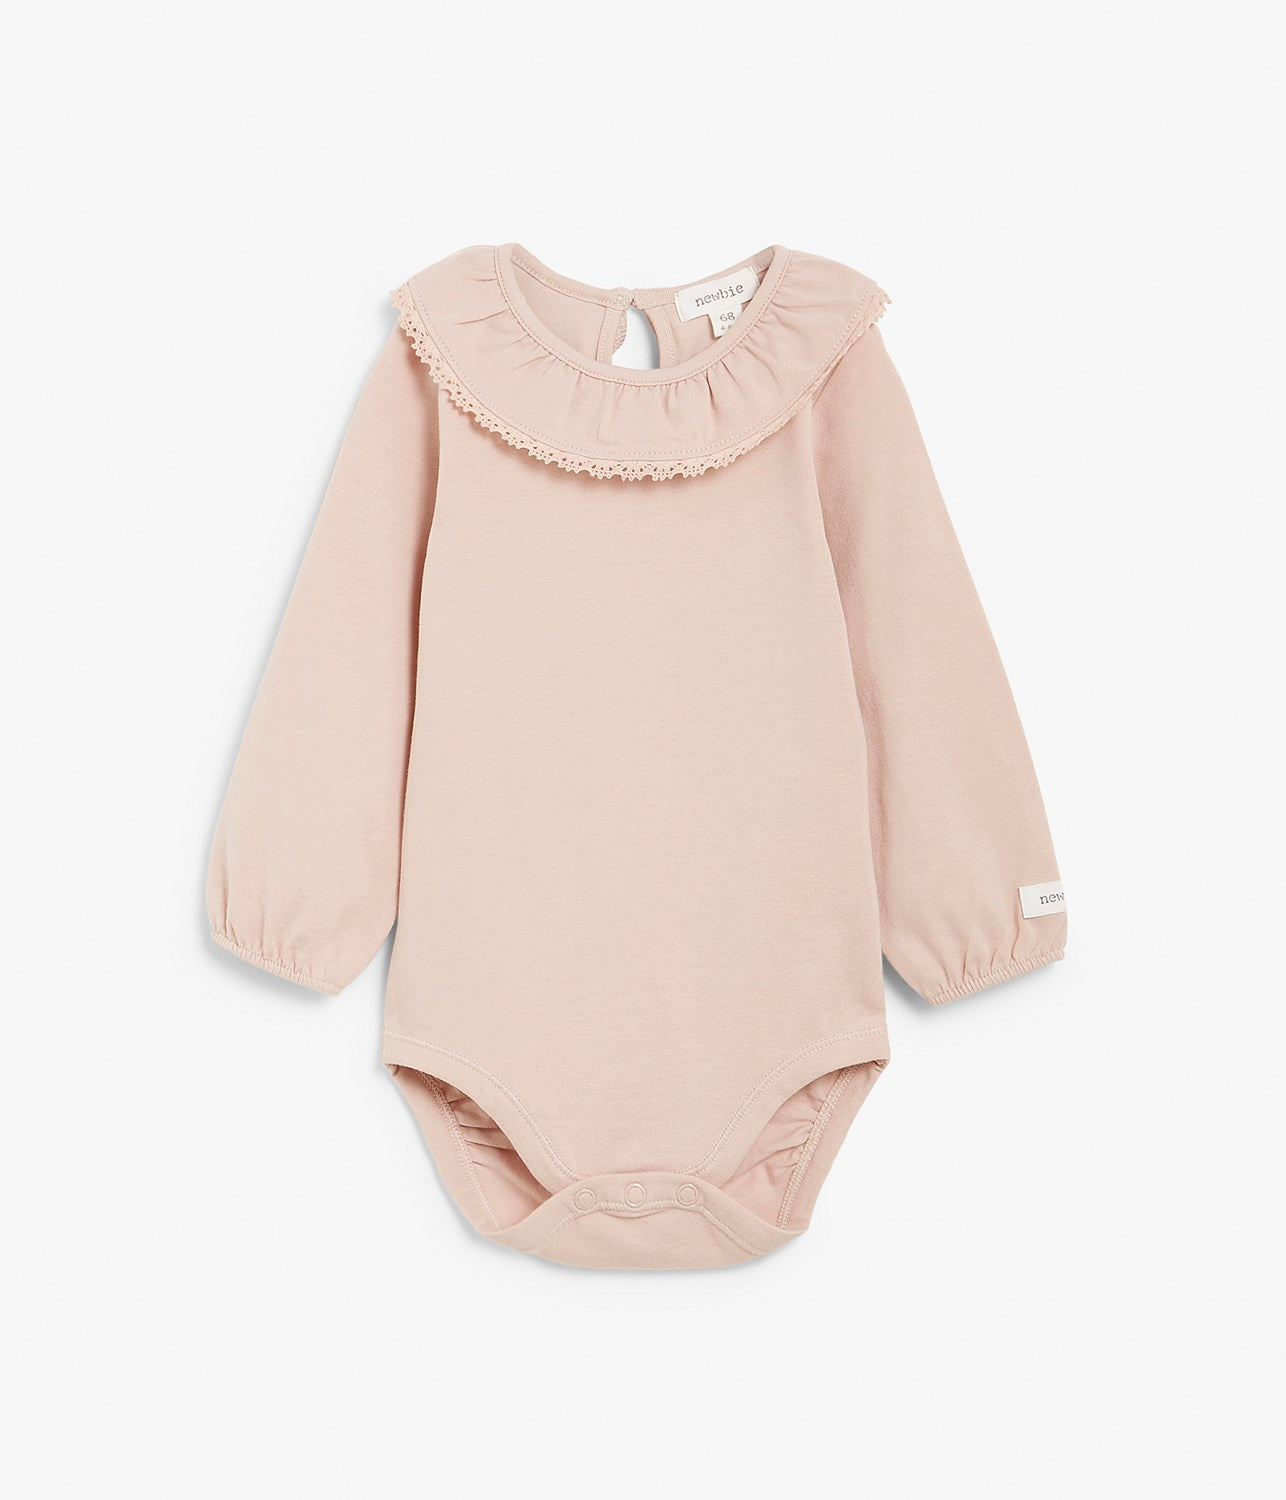 Baby soft pink body with lace collar